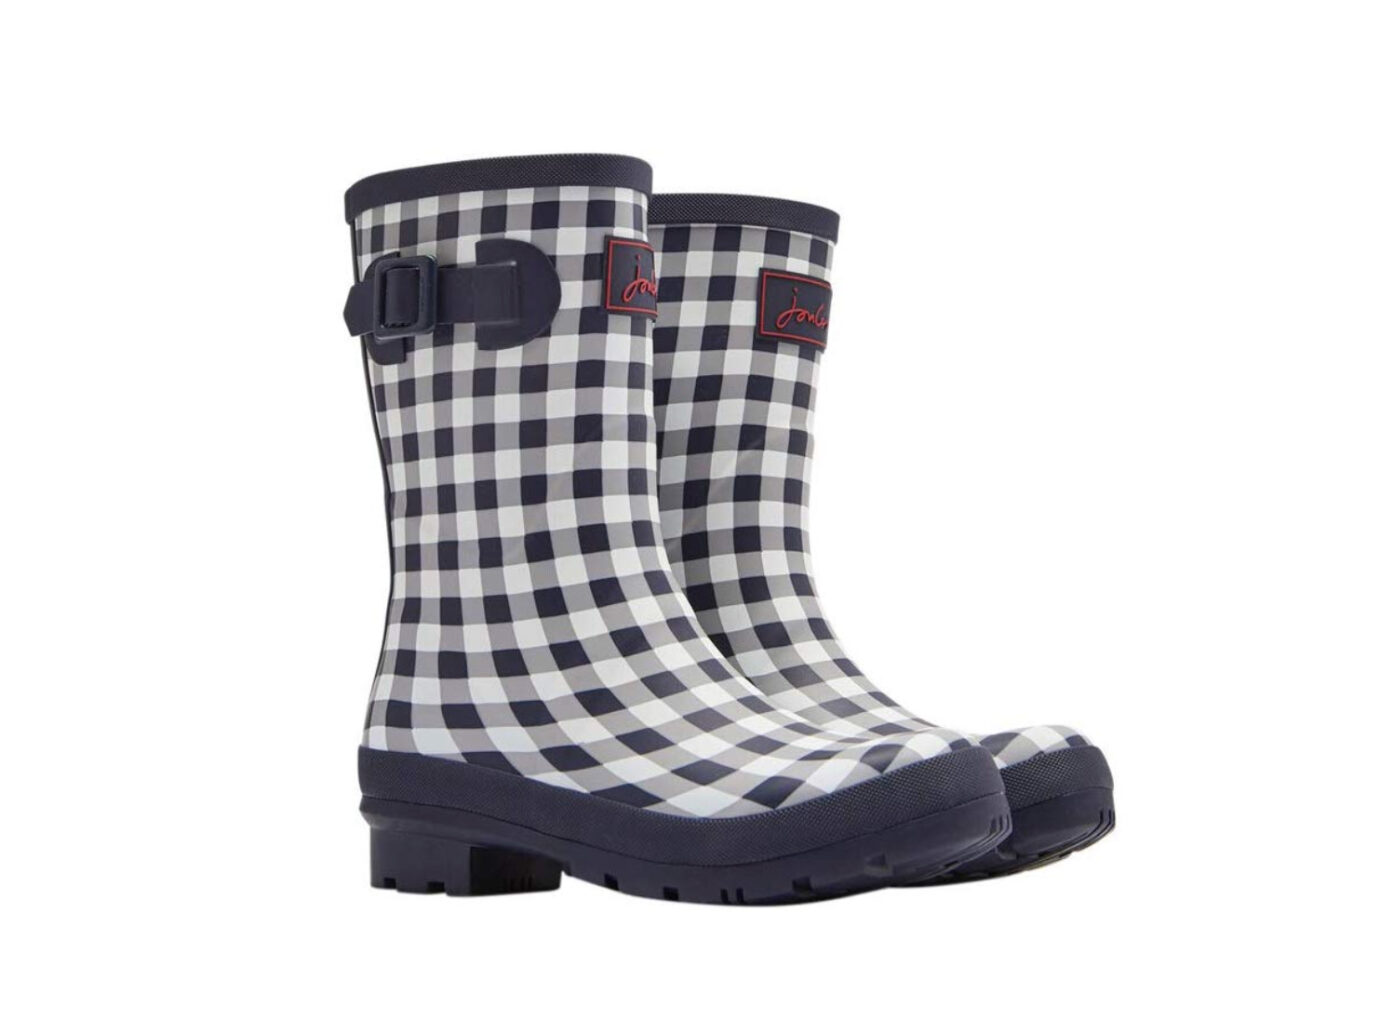 Joules Molly Mid-Height Printed Rain Boot in gingham